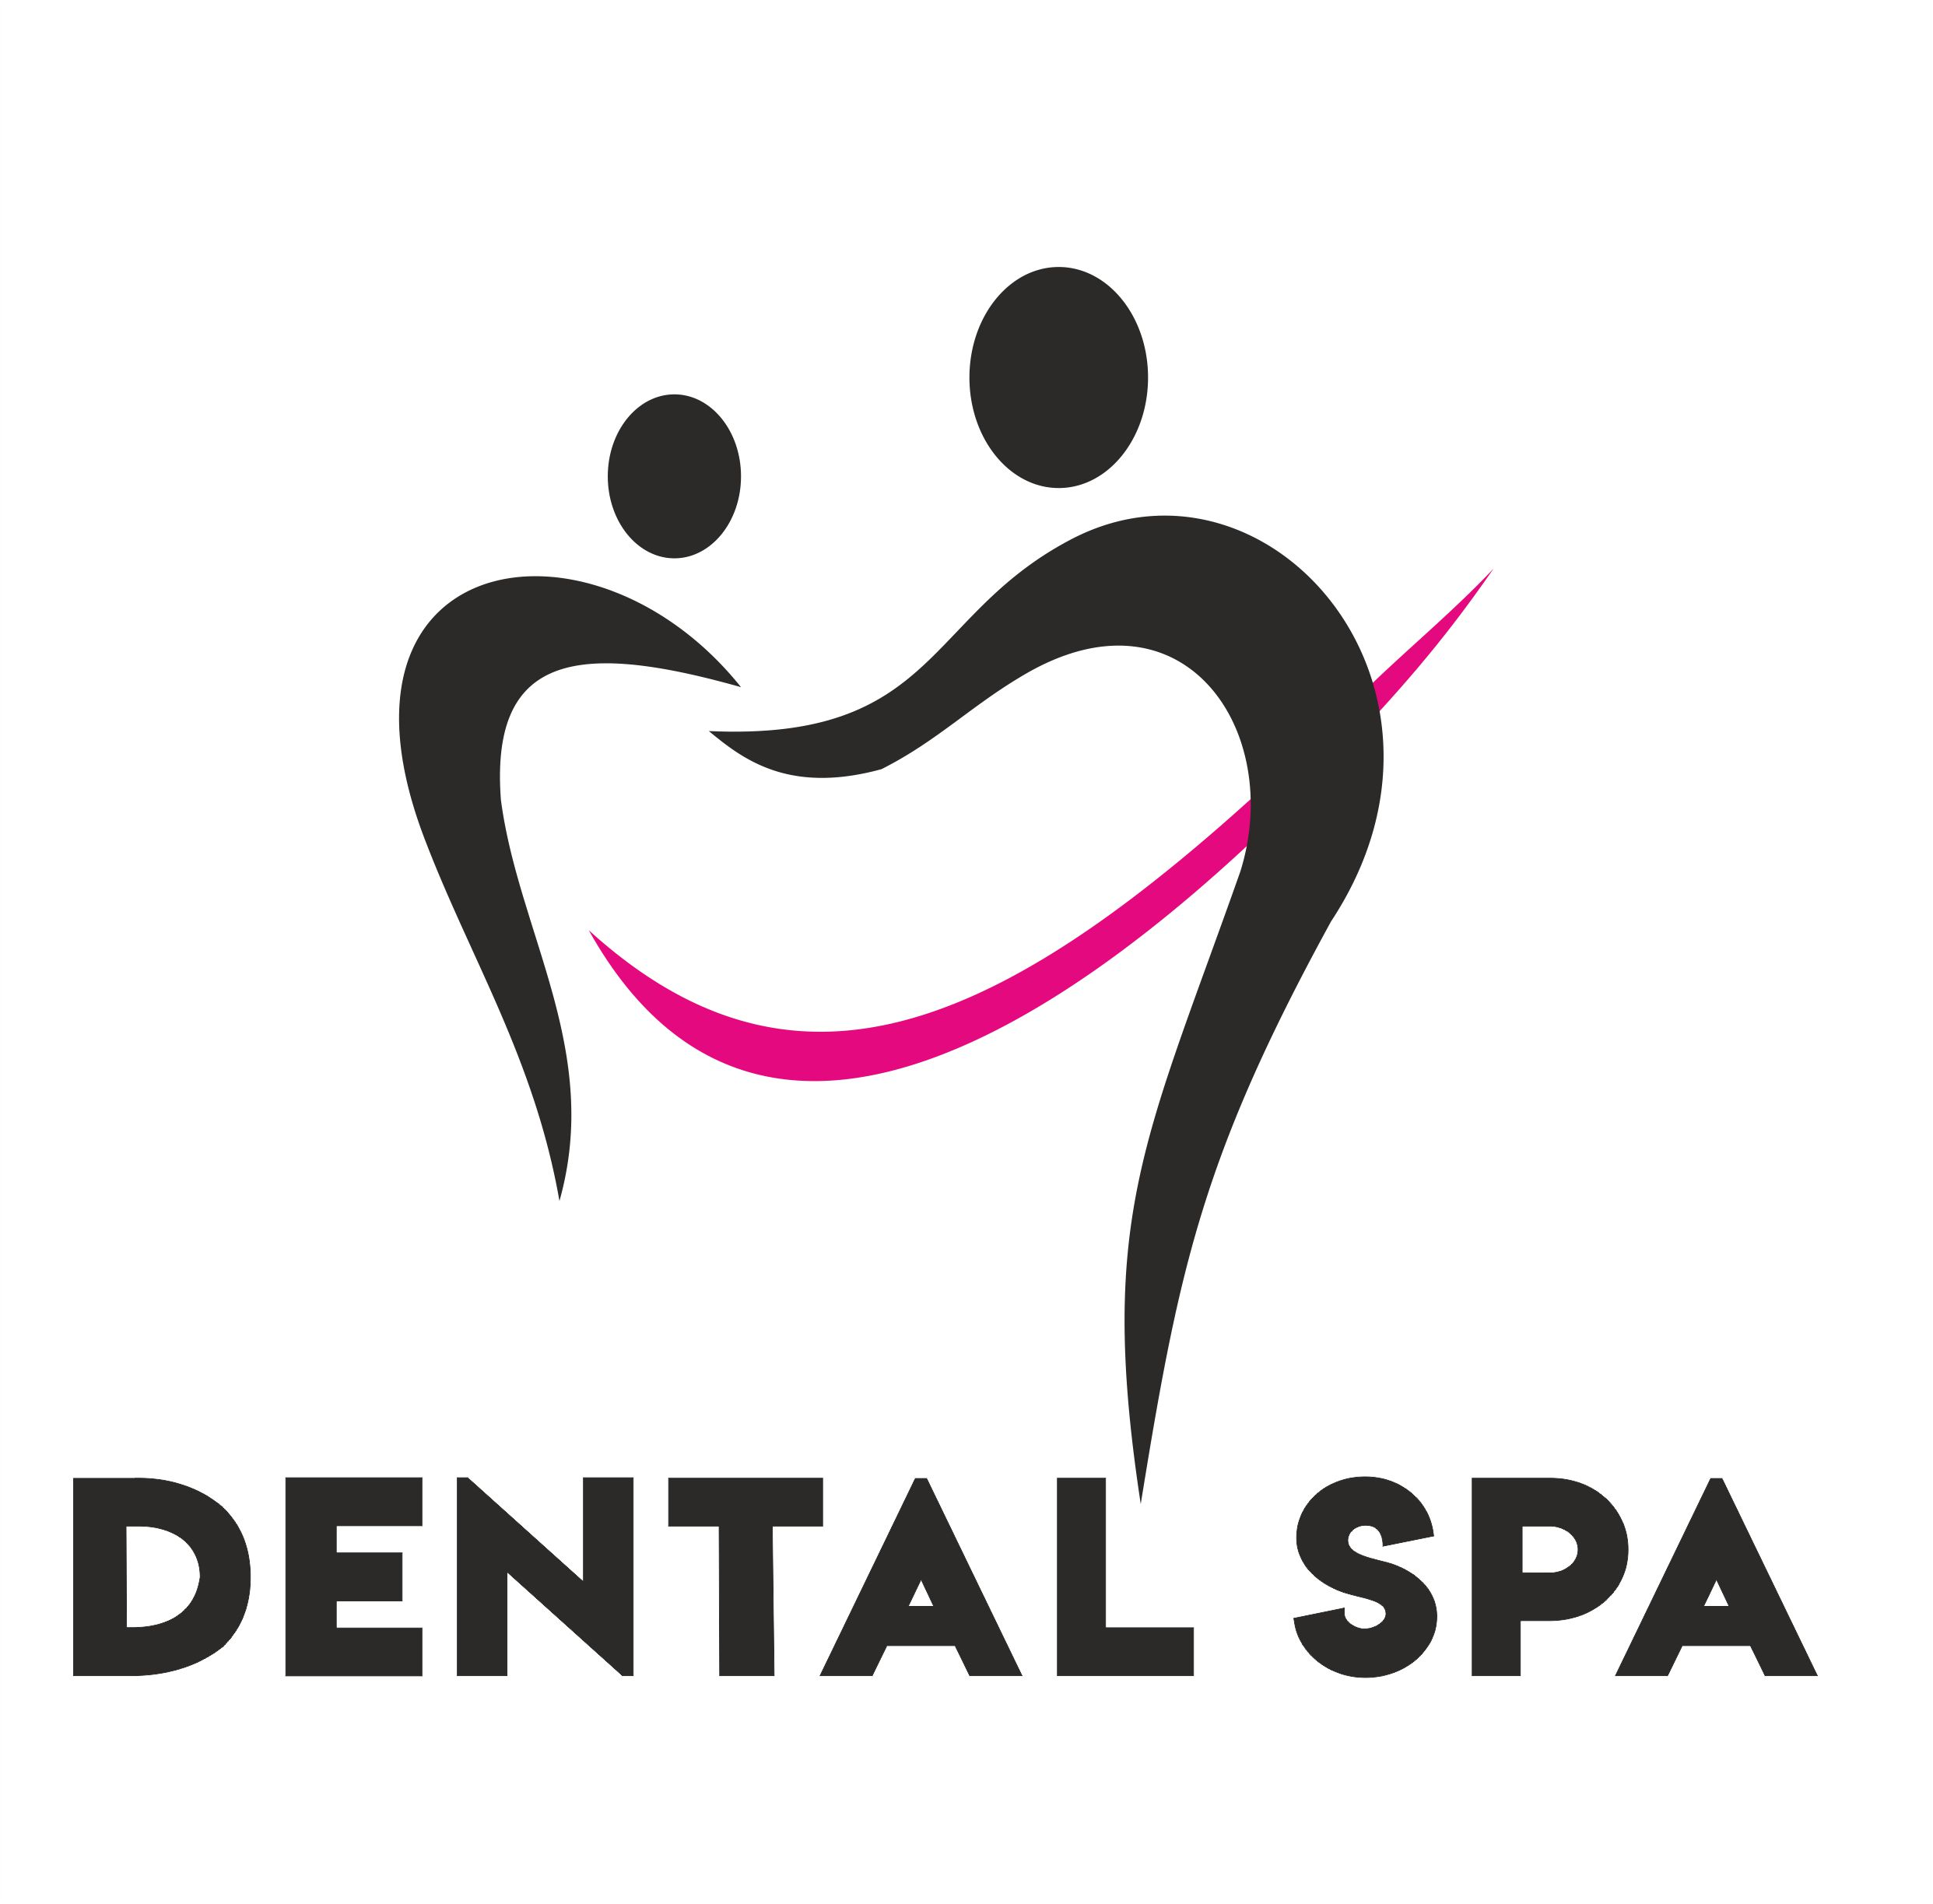 Logo Dental Spa sciana wnetrze 1